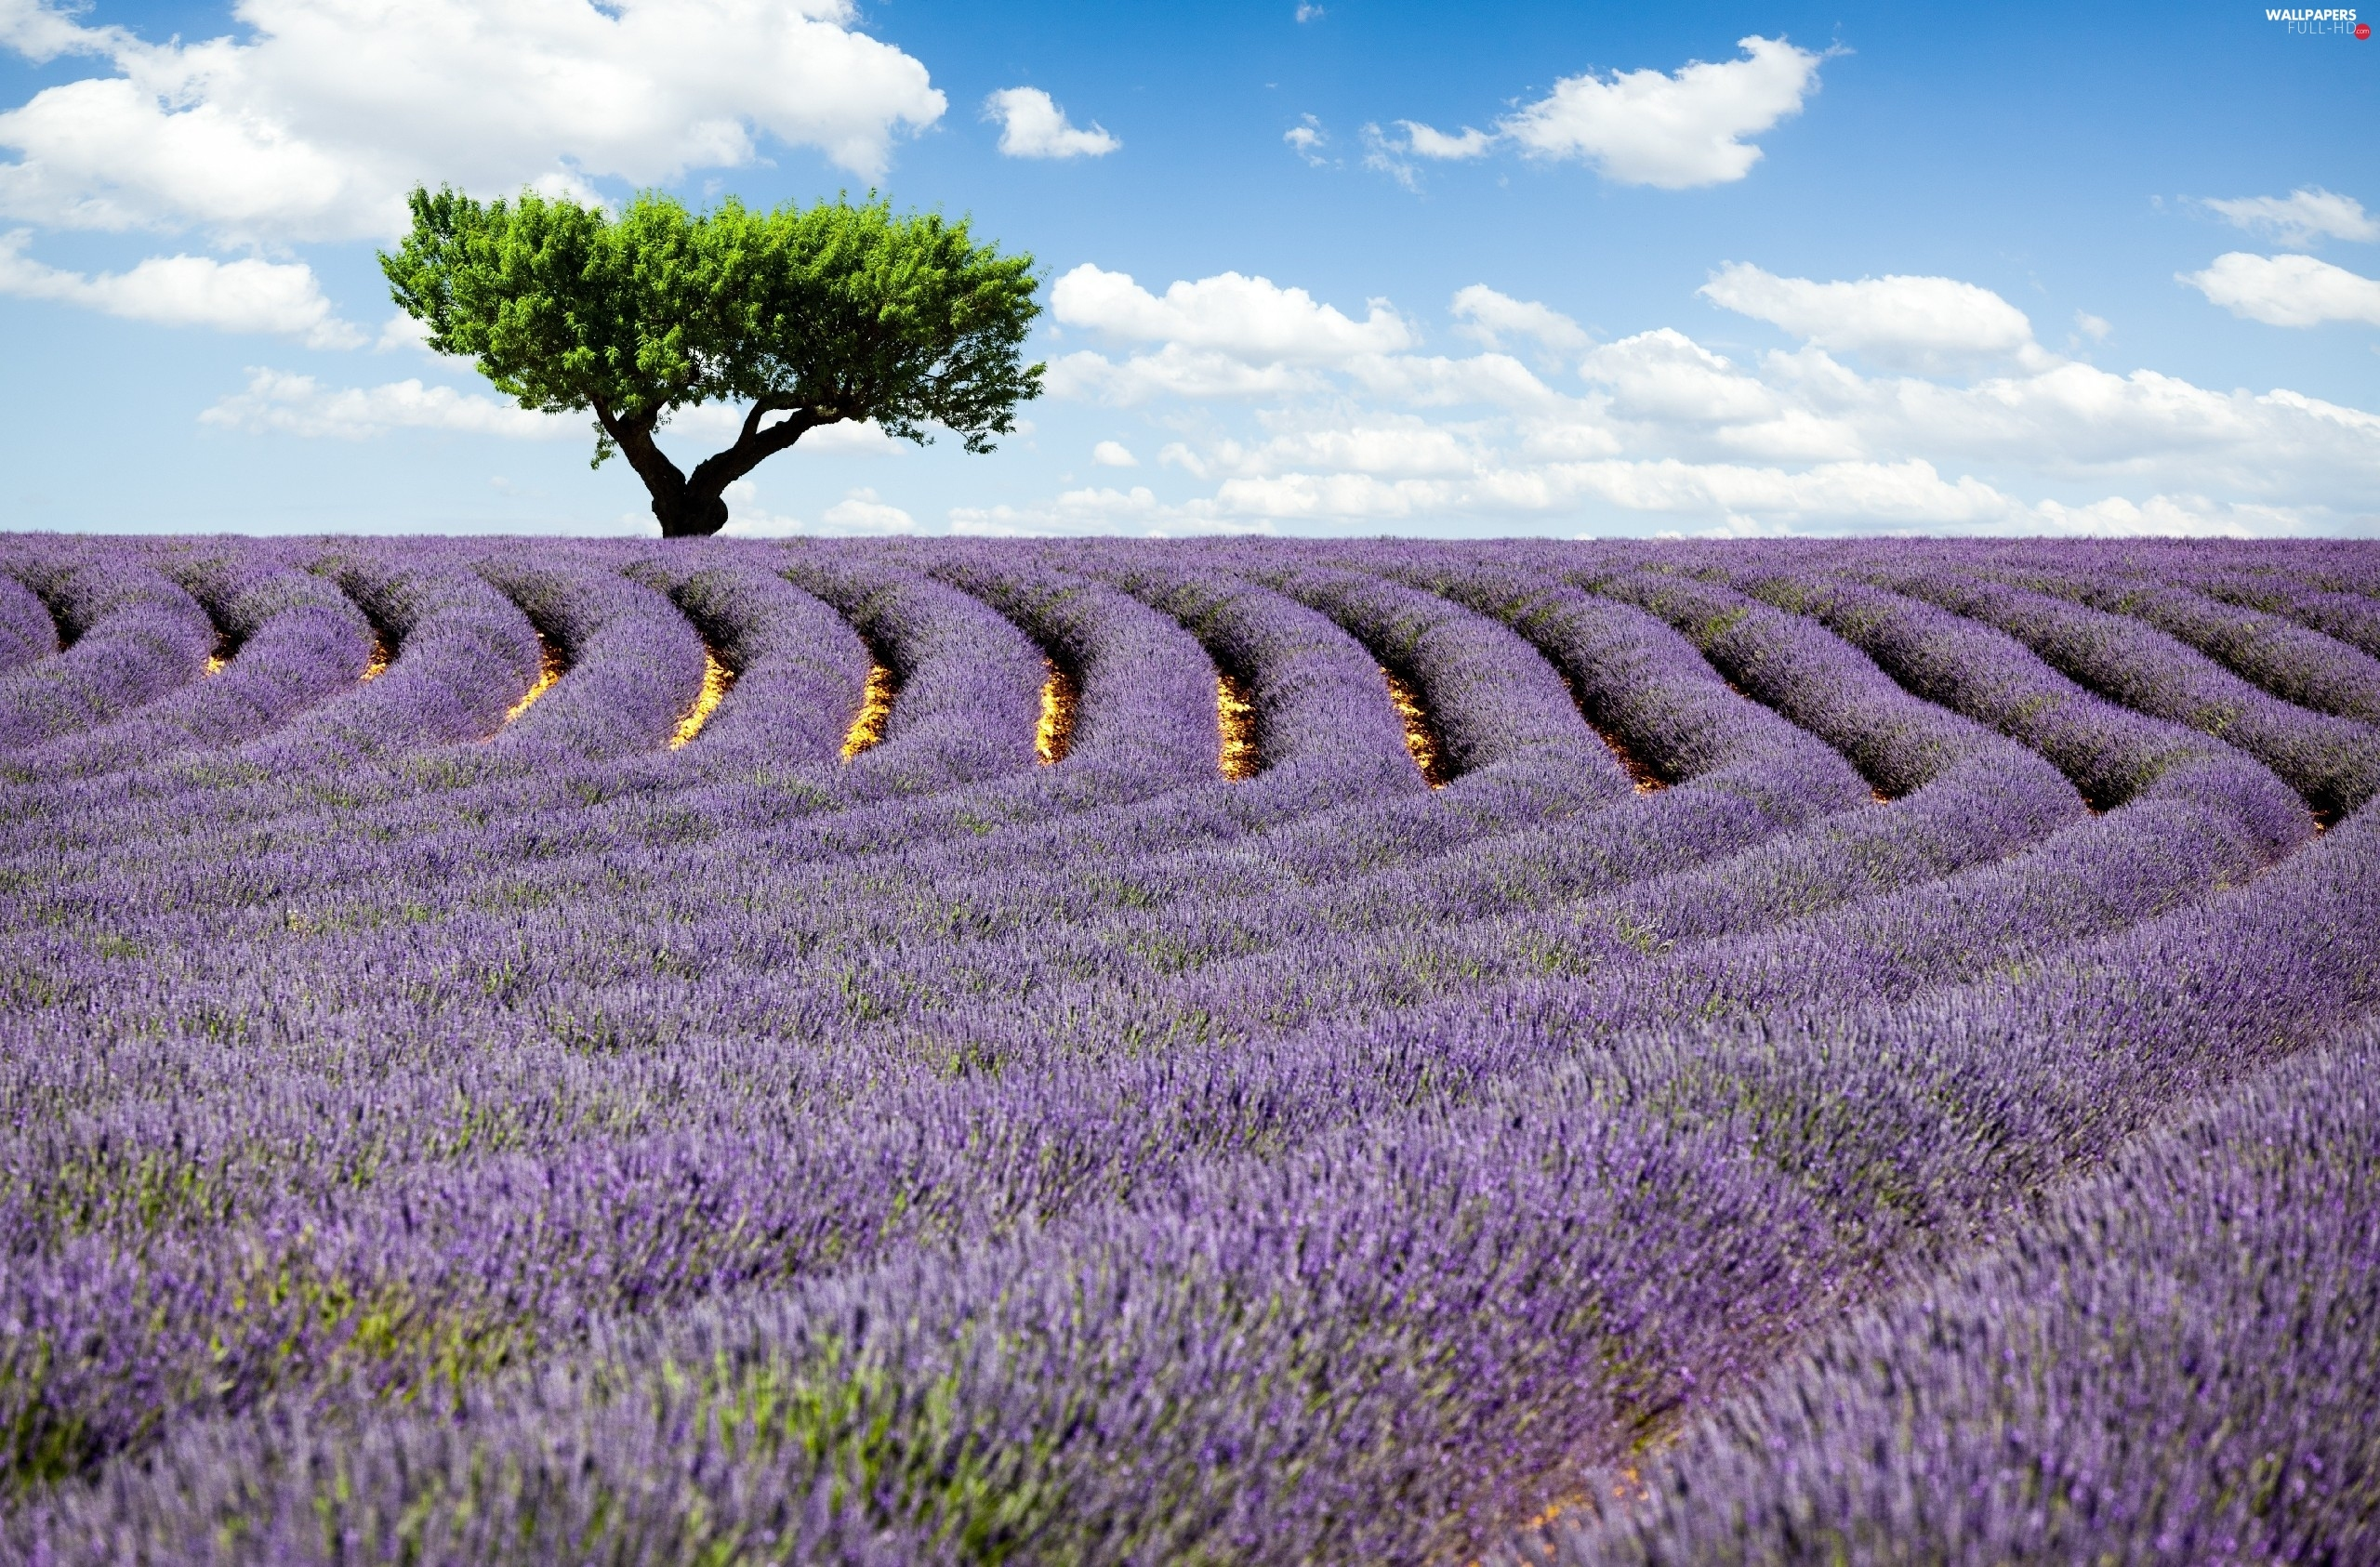 clouds, trees, Field, lavender